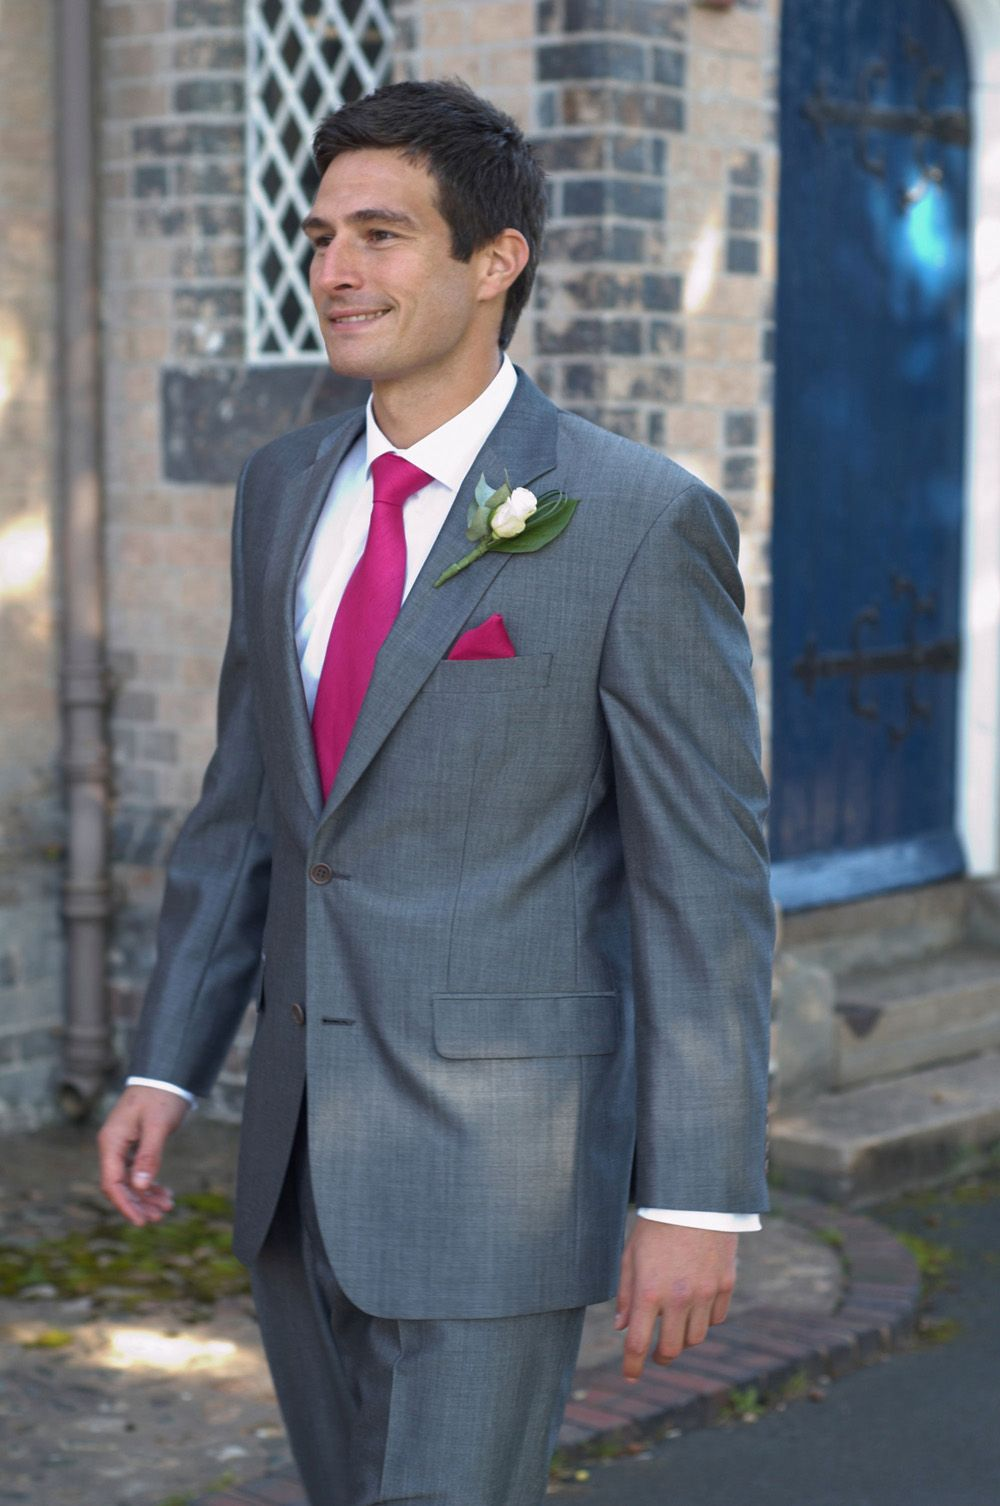 Grey Suit For Wedding What Shirt And Tie Combo Boards